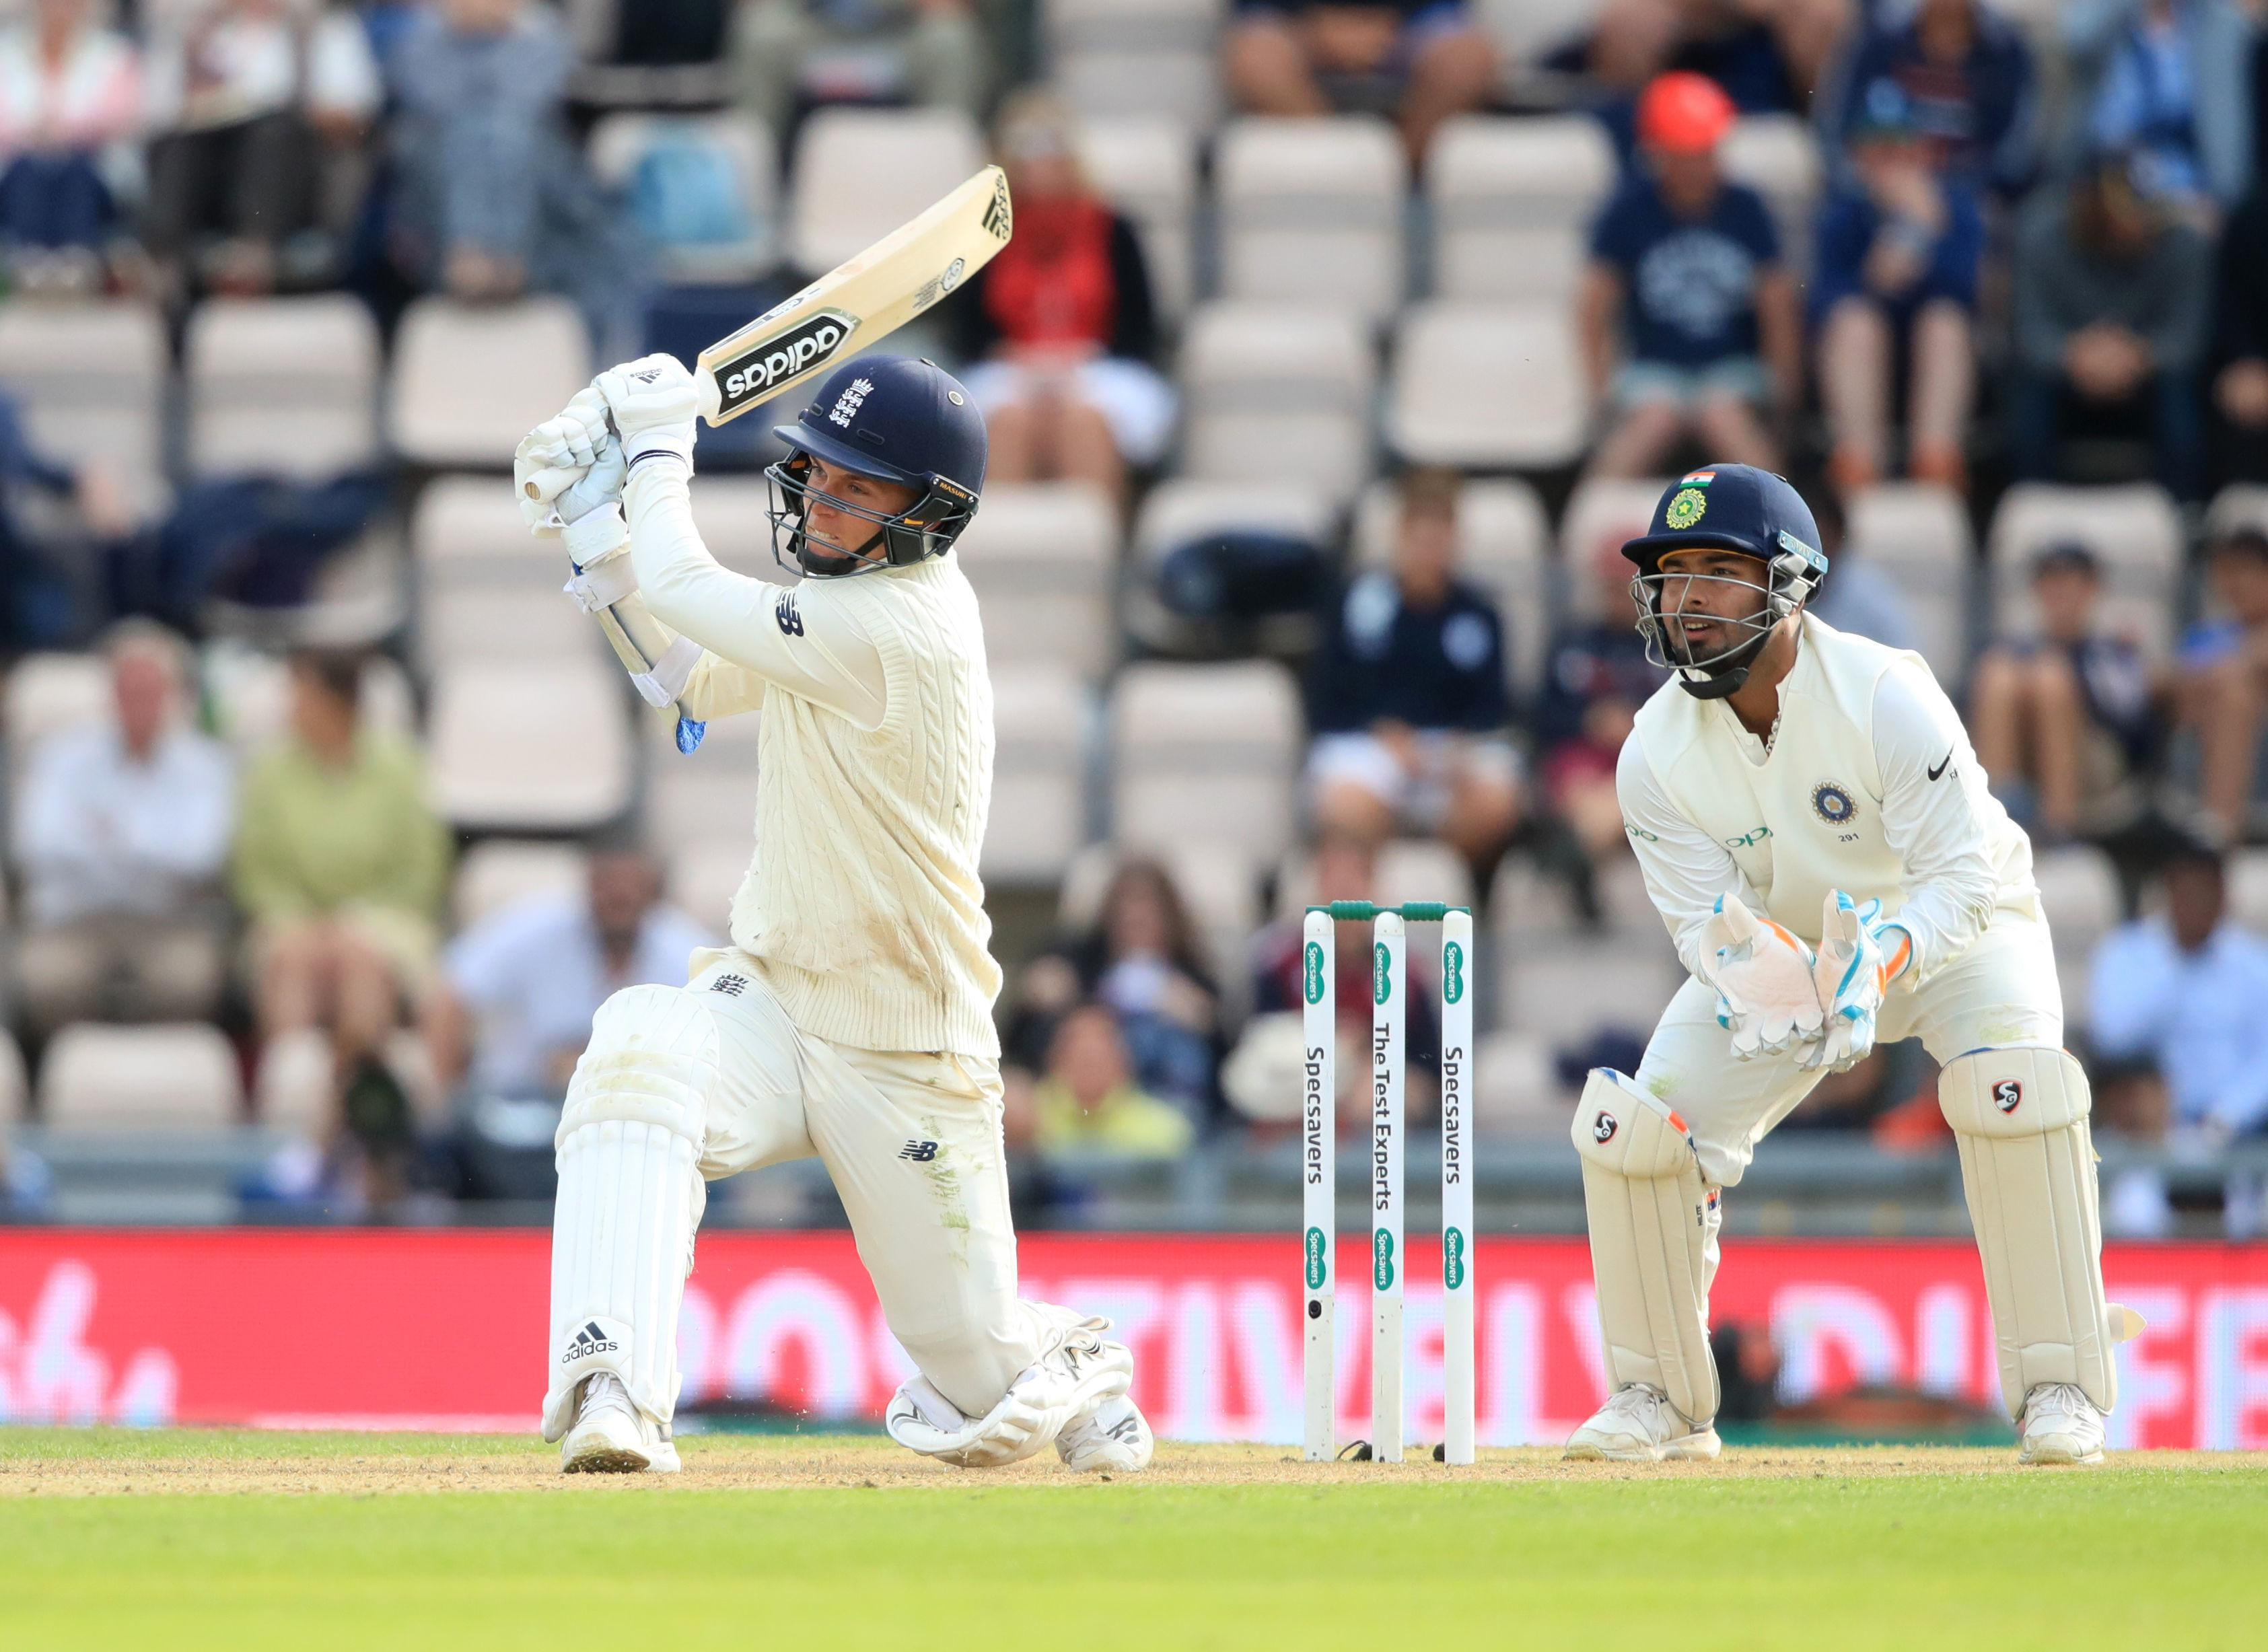 Curran brought up his half-century with a six at the Ageas Bowl